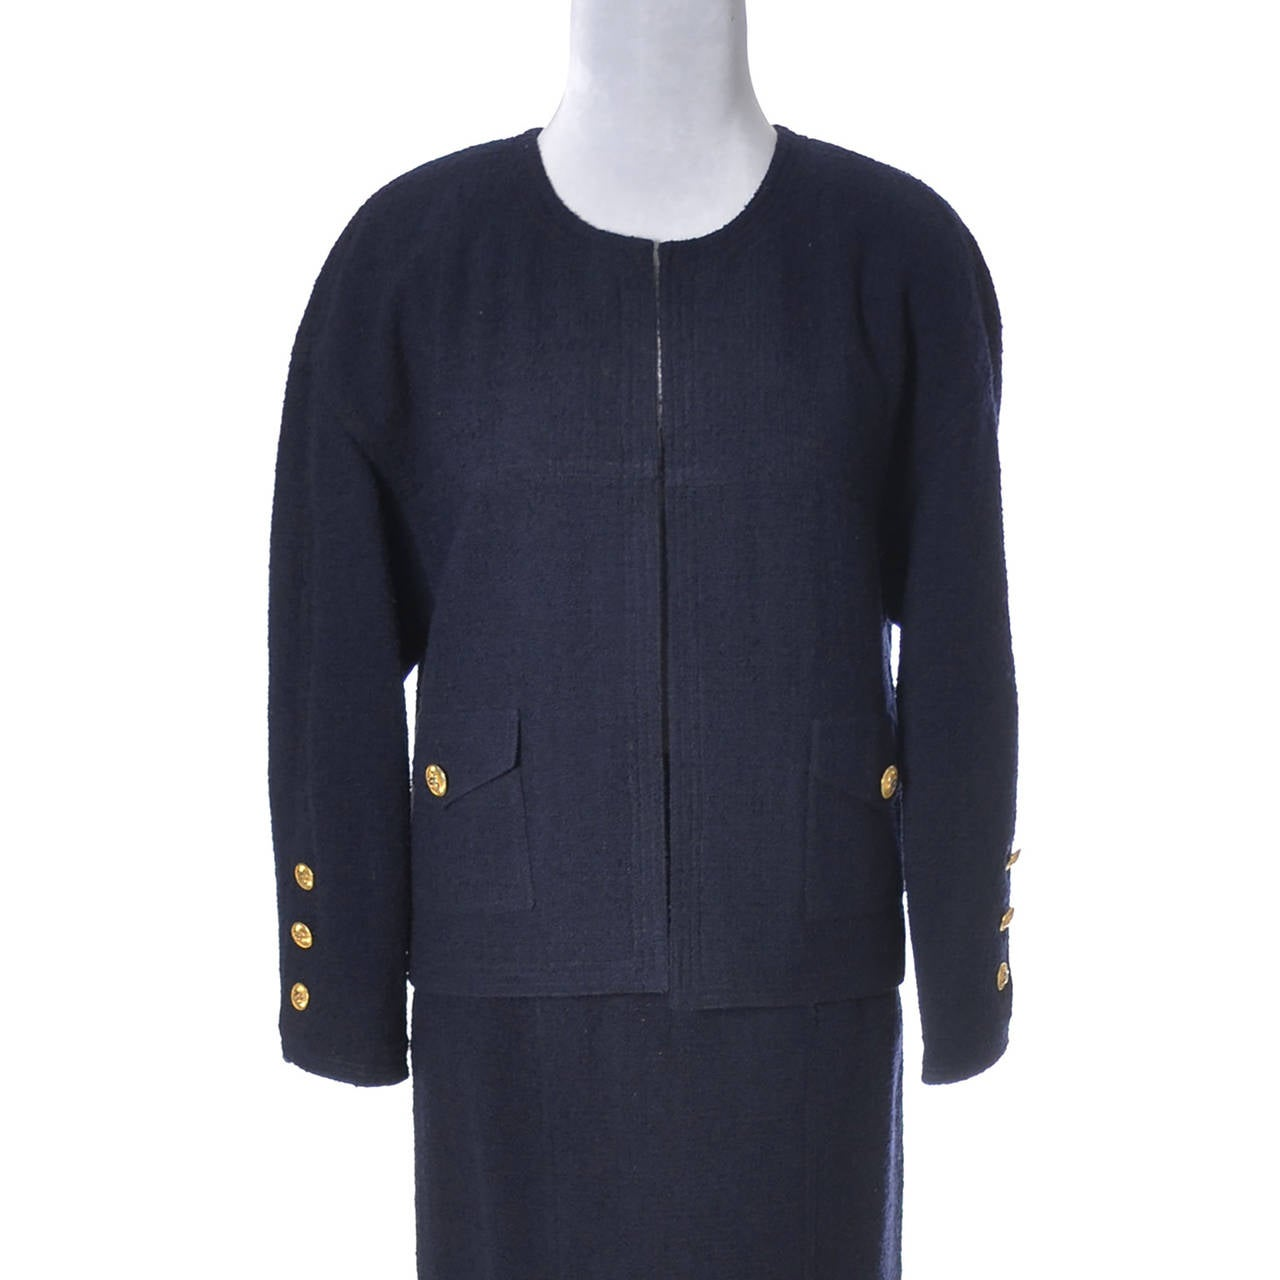 ca845a918c9f Women's Vintage Chanel Skirt & Blazer Suit in Blue Wool Boucle W/ Gold CC  Buttons